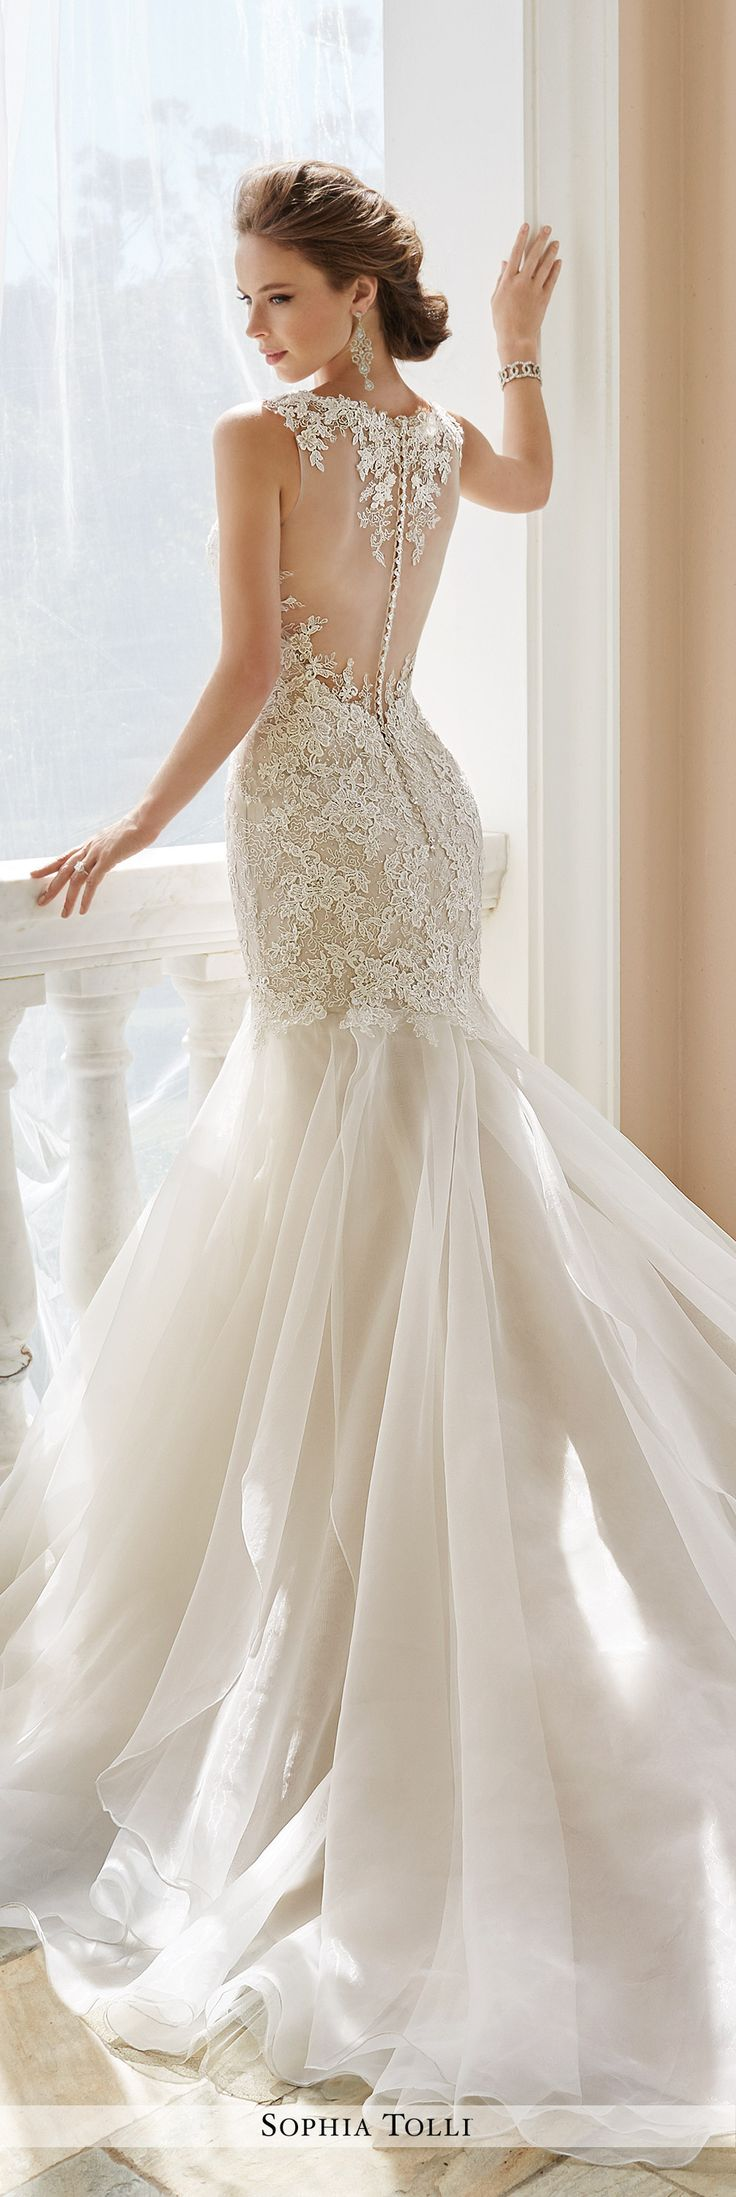 Fresh Sophia Tolli Fall Wedding Gown Collection Style No Y Aprilia sleeveless lace